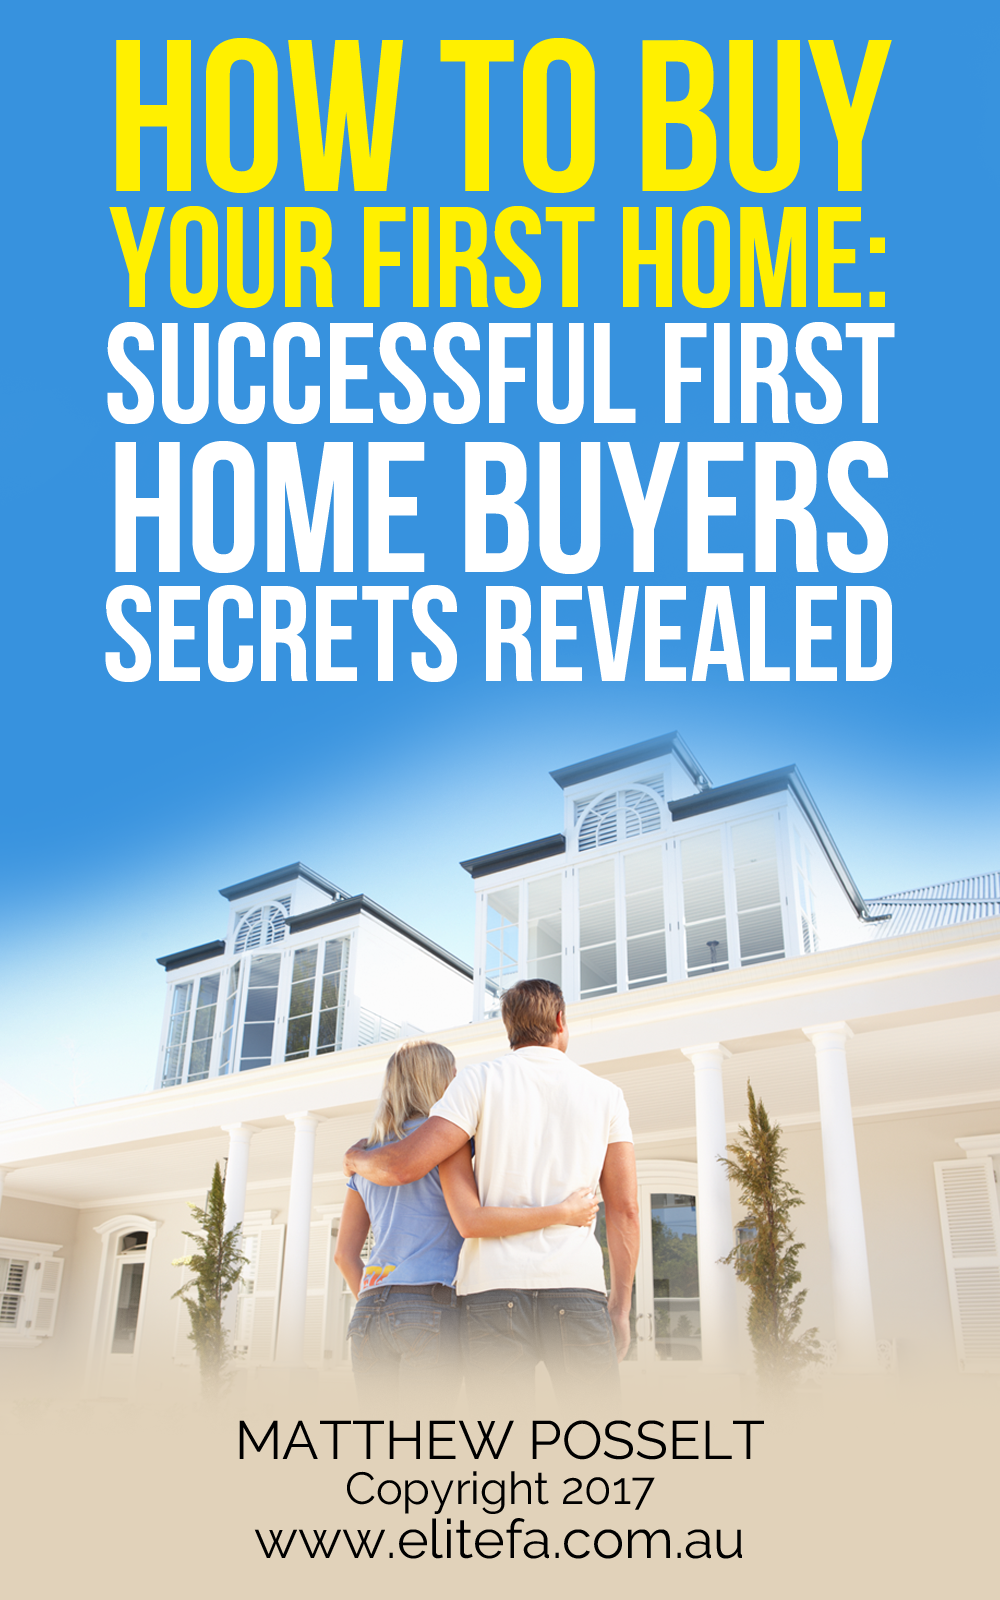 How To Buy Your First Home - Matthew Posselt - Elite Finance Australia